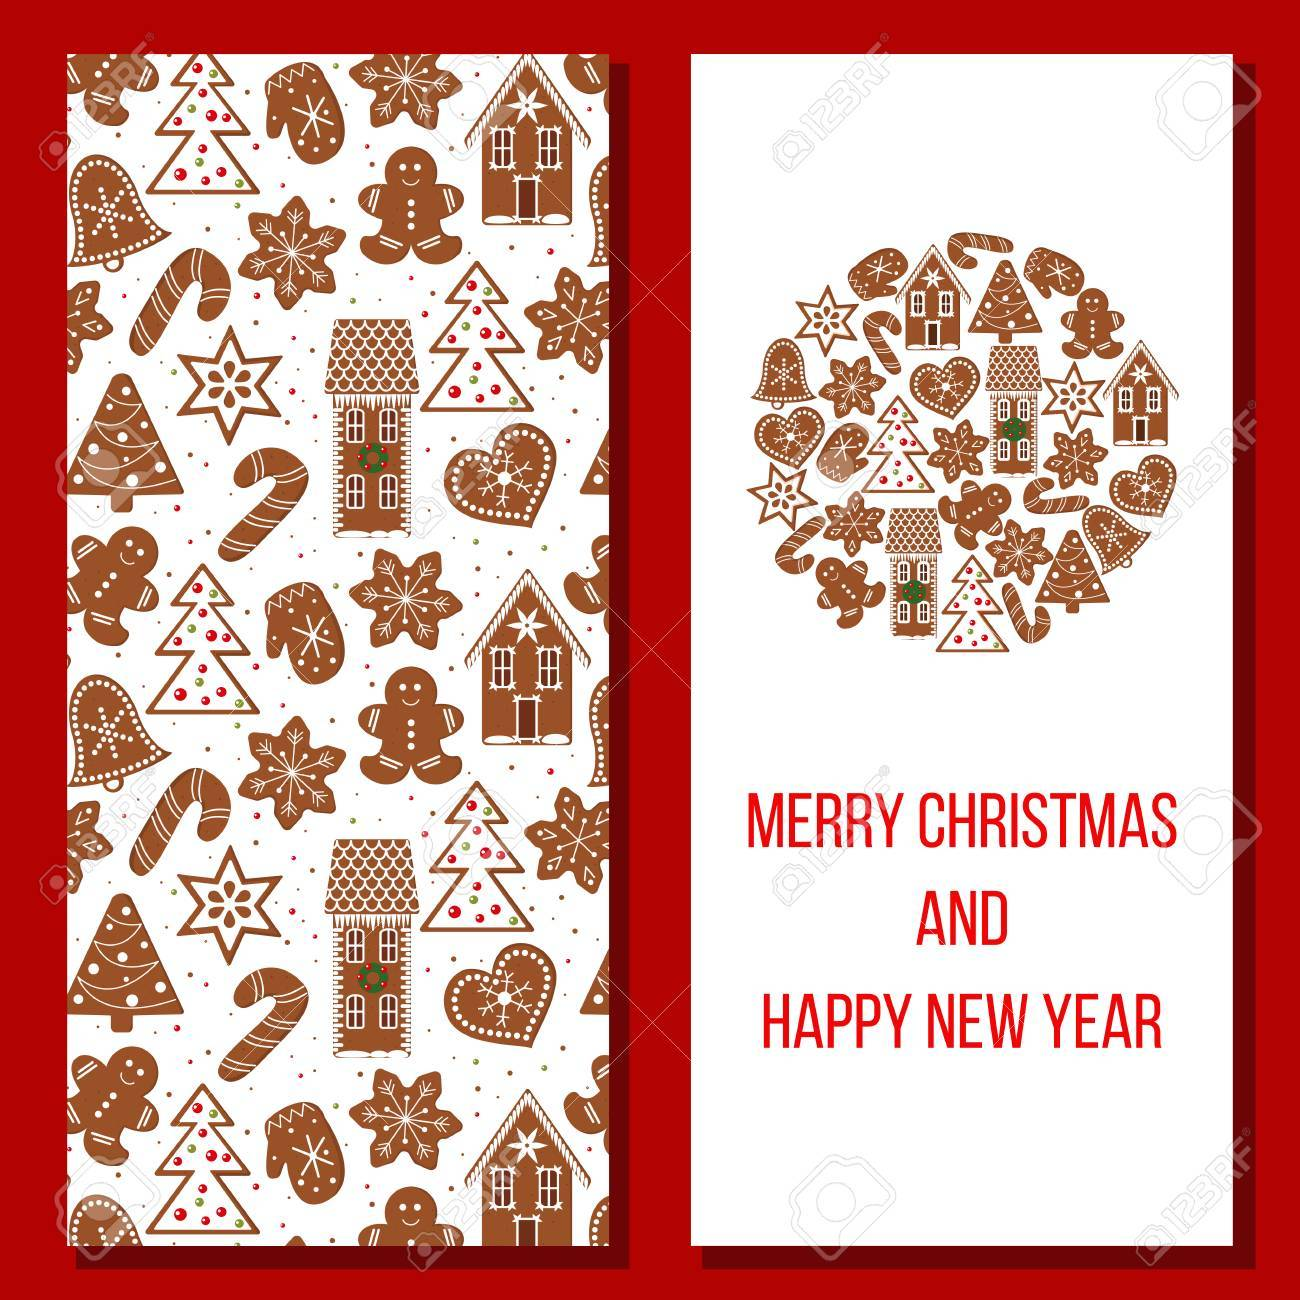 Gingerbread christmas and happy new year greetings set with funny gingerbread christmas and happy new year greetings set with funny figures xmas tree snowflakes m4hsunfo